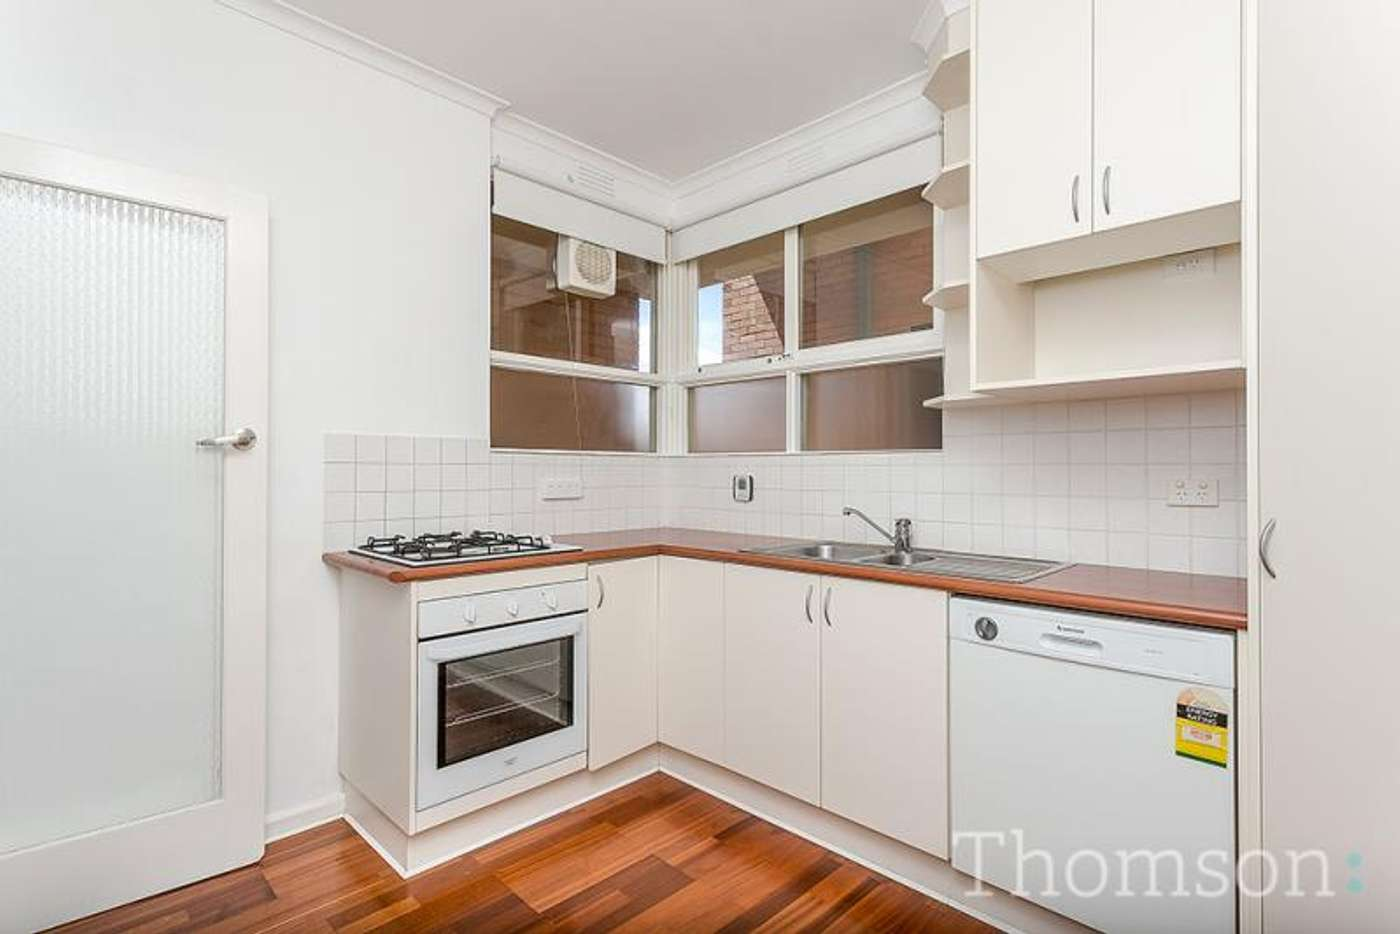 Main view of Homely apartment listing, 1/1279 High Street, Malvern VIC 3144